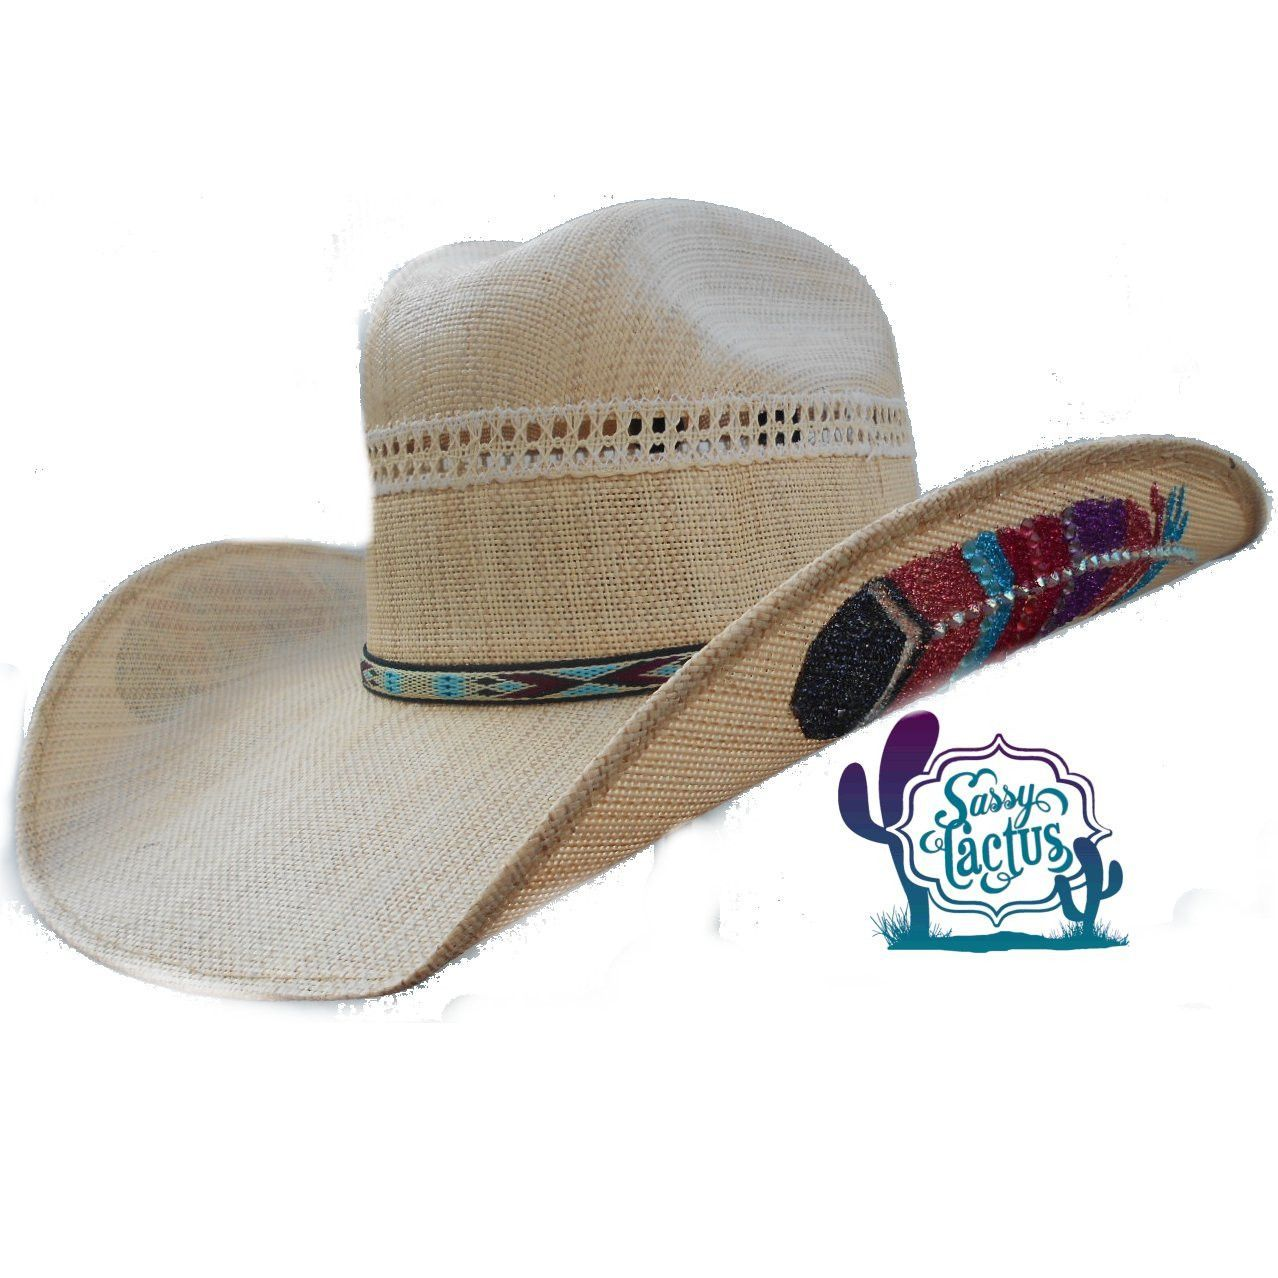 034159cc582 Rhinestones and glitter make up the Native American inspired feather design  on both sides of this pretty straw cowboy hat by Bullhide Hat Company.